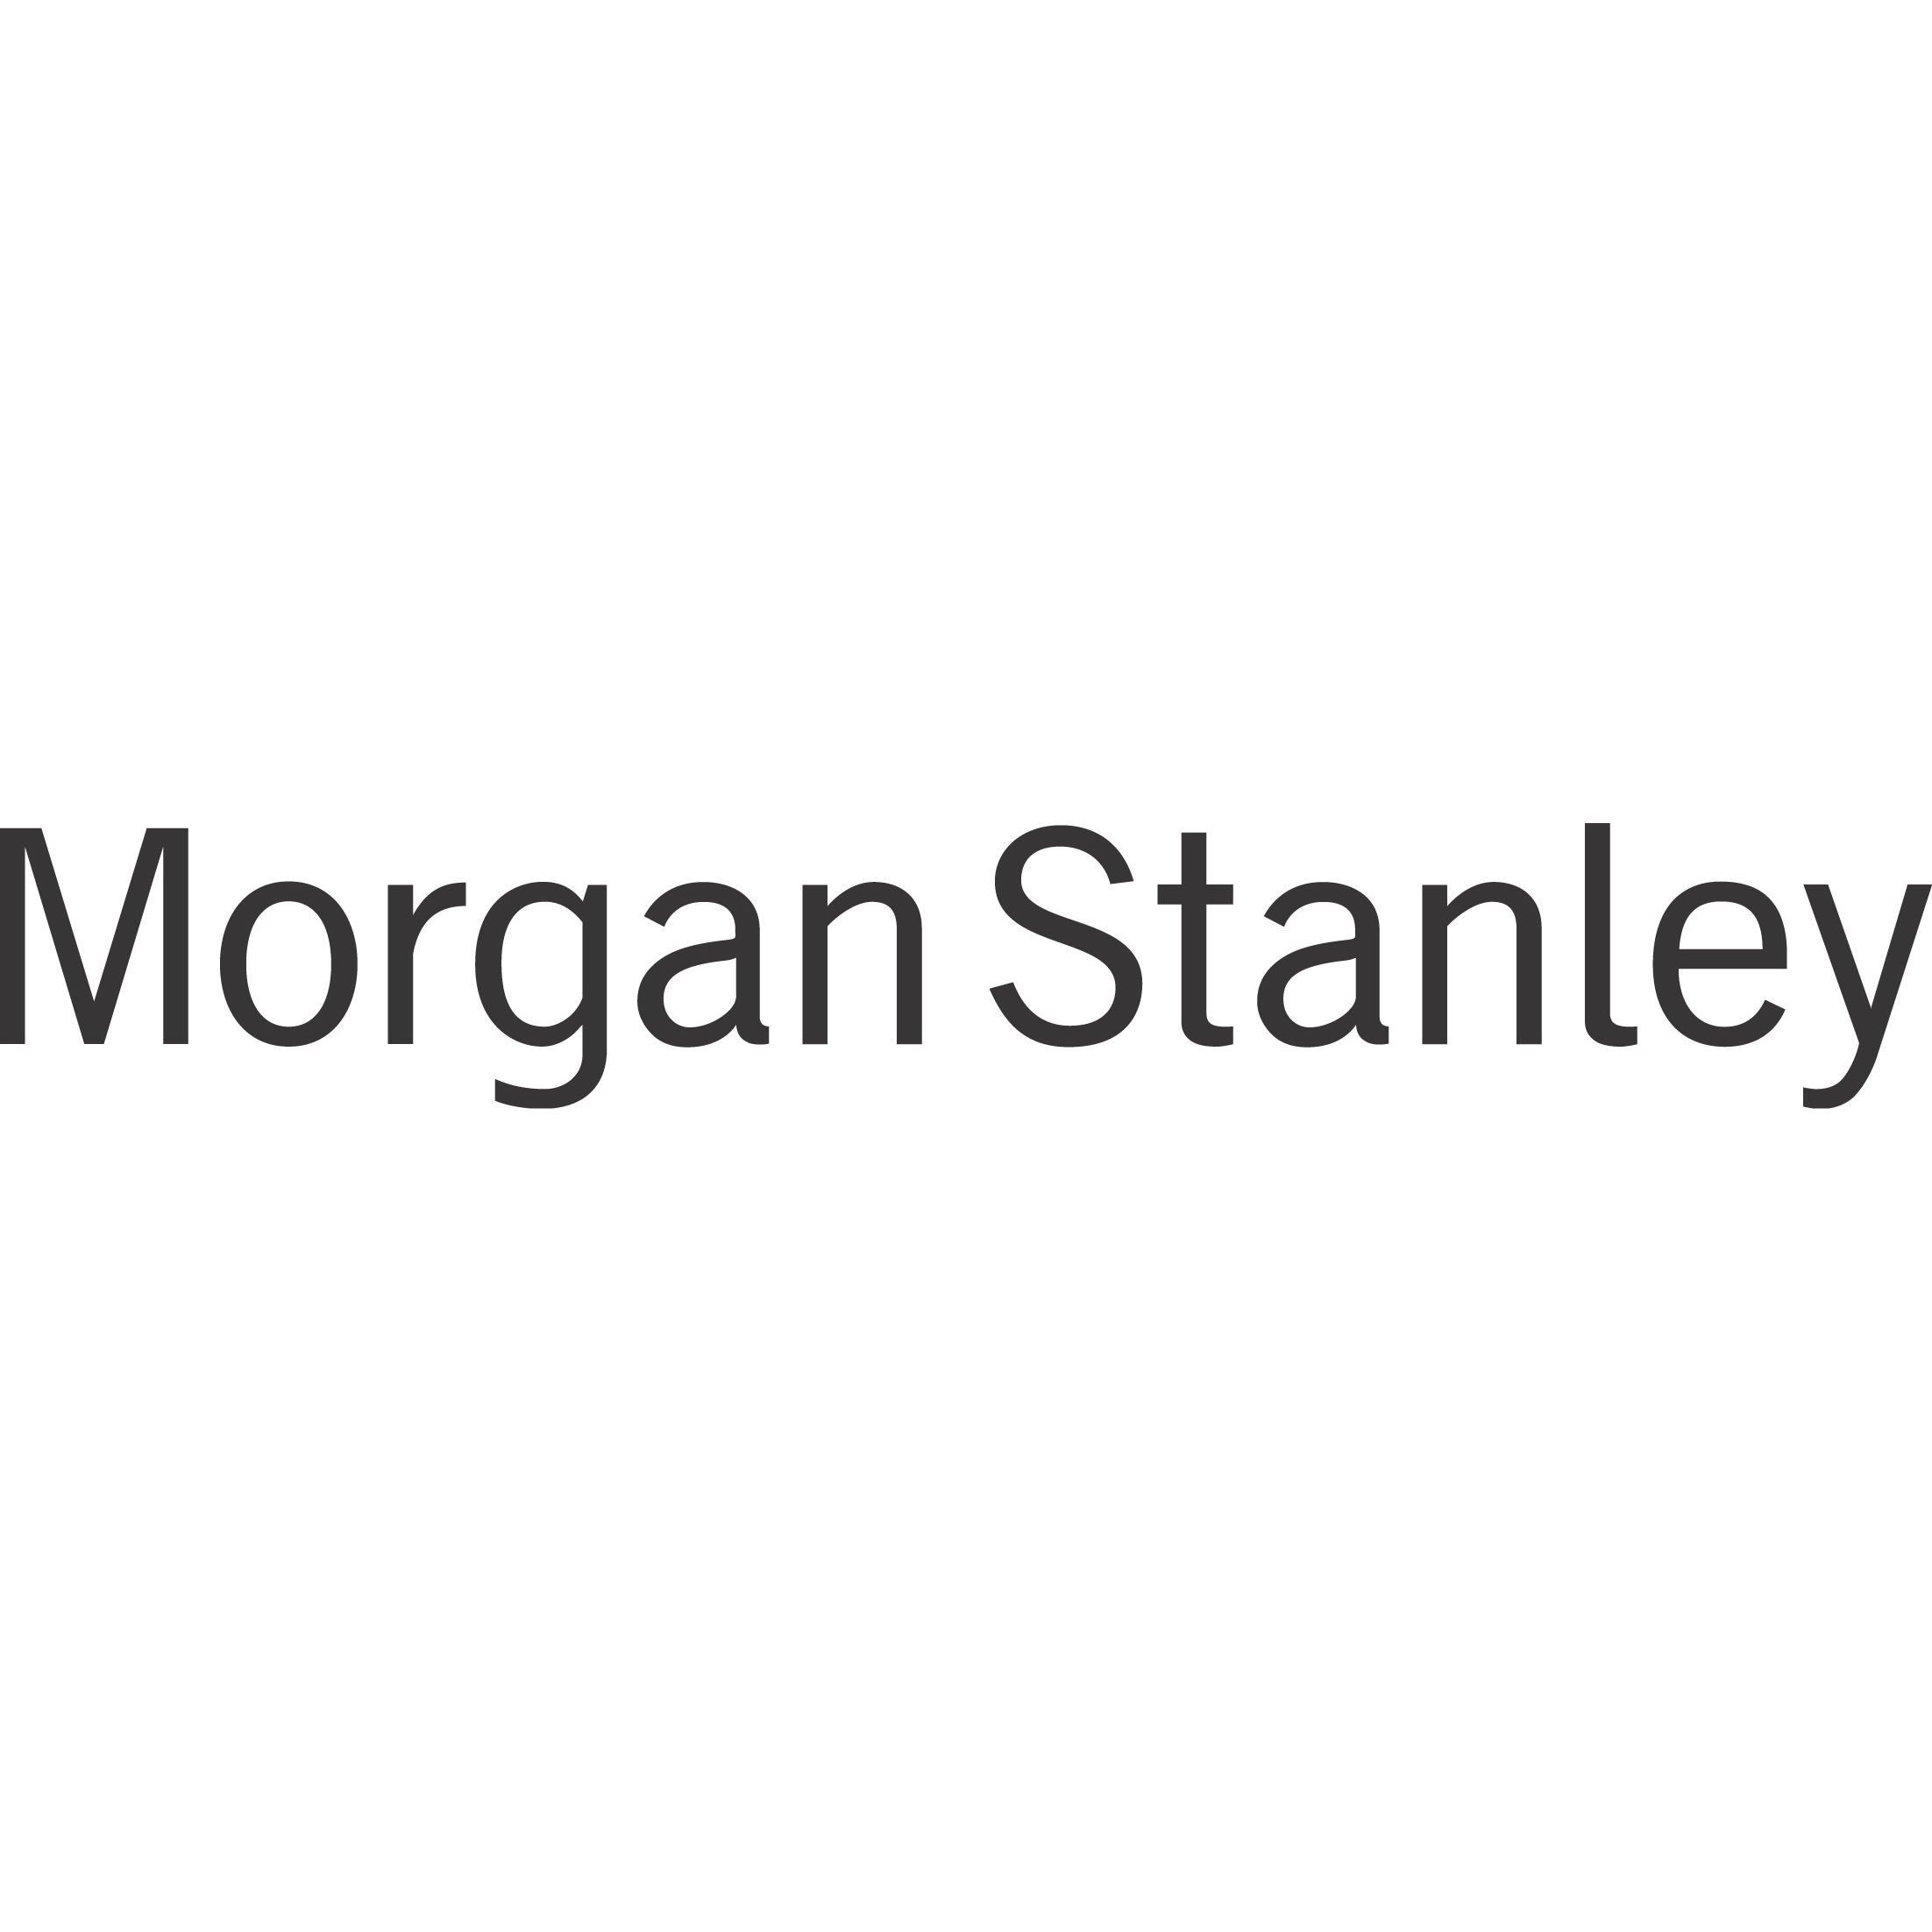 Dean Schockling - Morgan Stanley | Financial Advisor in Columbus,Ohio